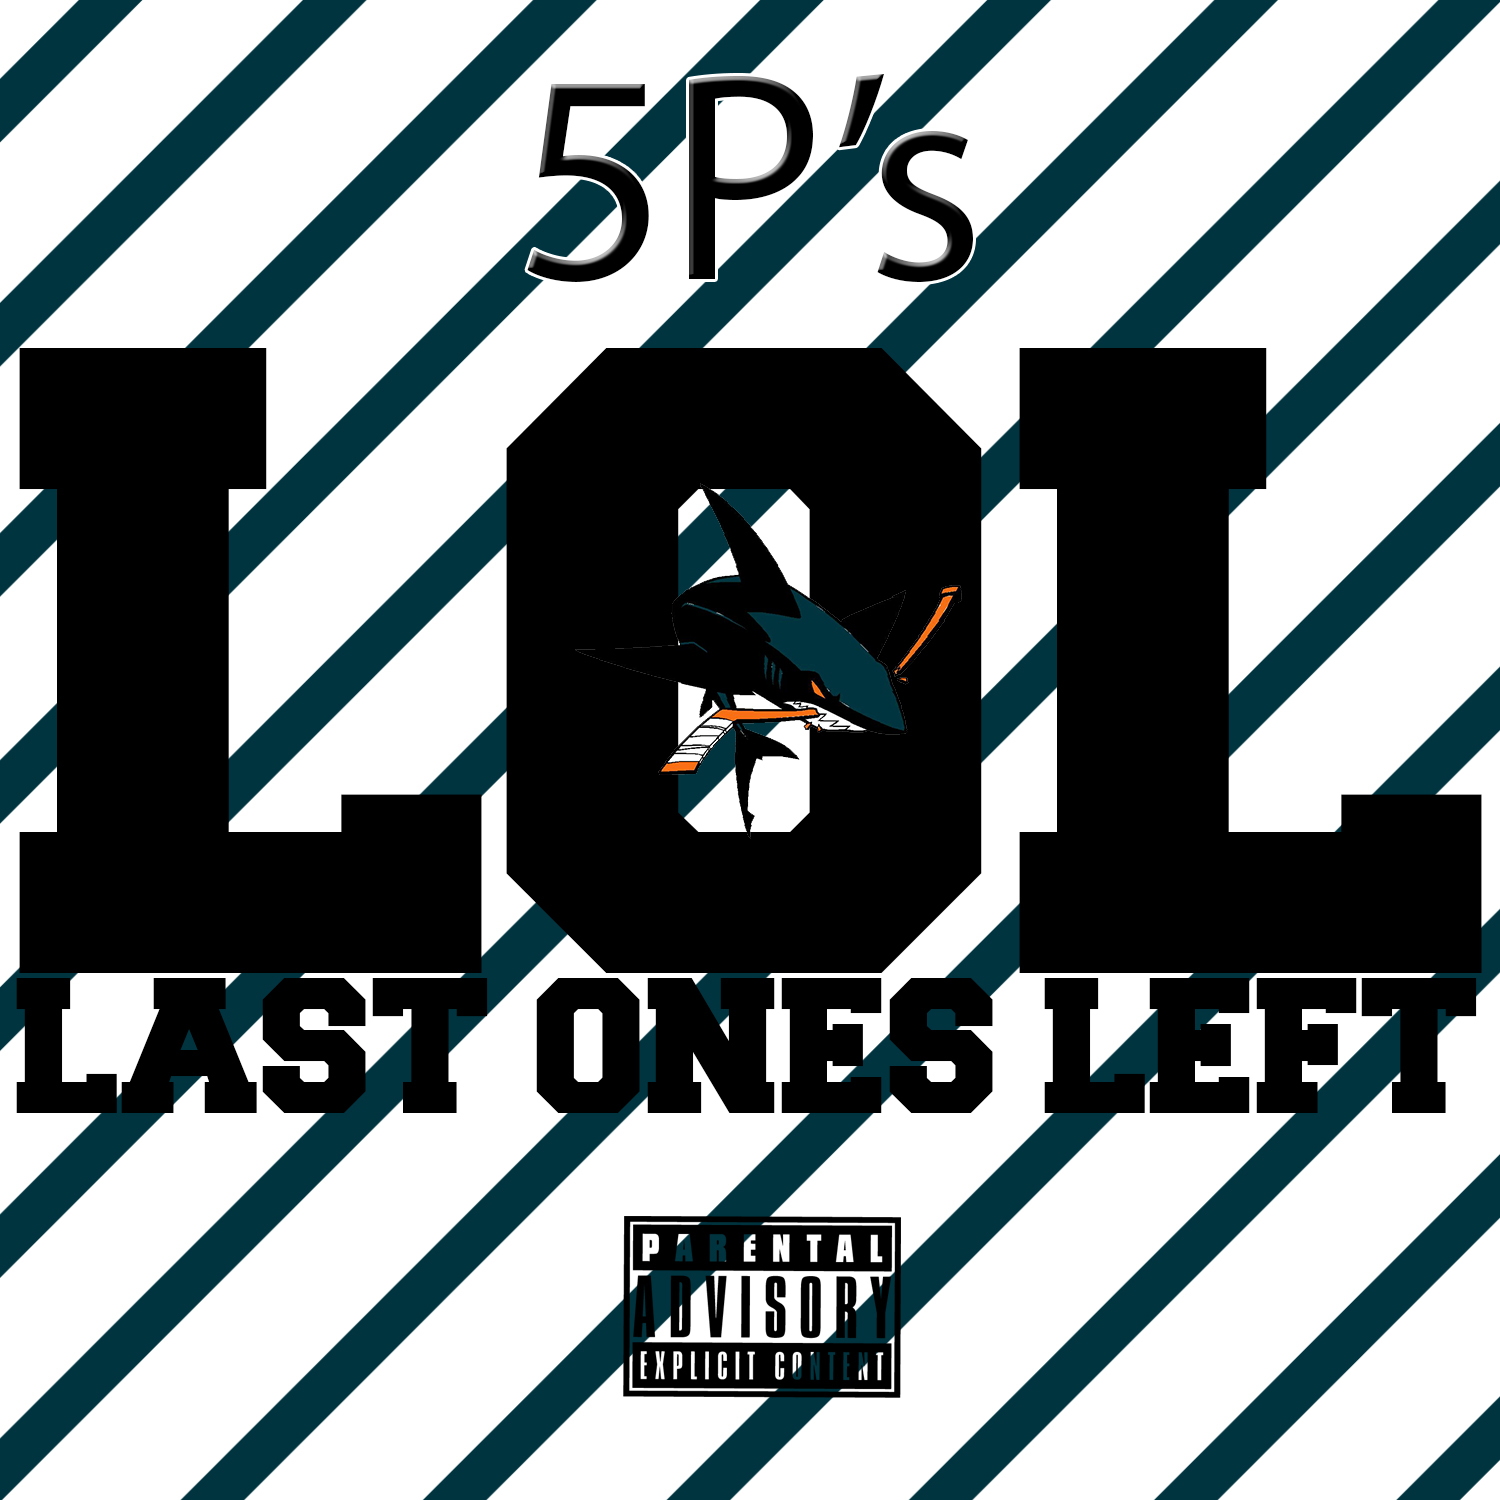 5P's - LOL (Last Ones Left) [Thizzler.com]